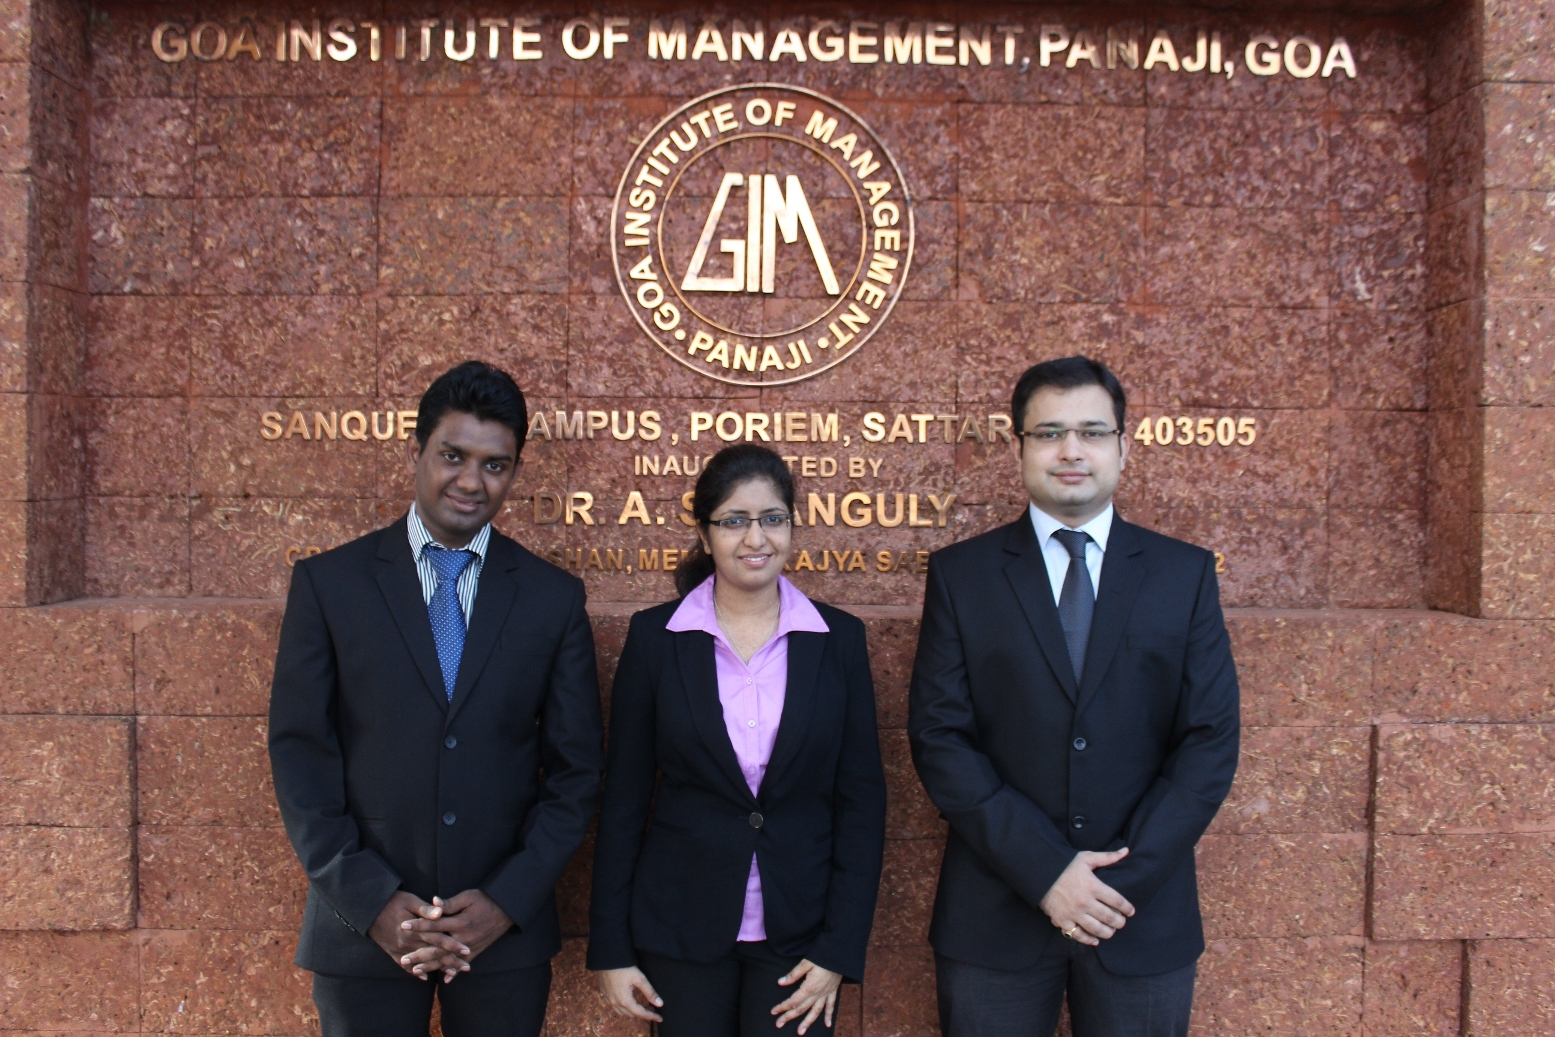 Goa Institute of Management (GIM) and IIM Bangalore quality from the Asia Ocenia region for the annual Global Marketing Competition to be held in Spain later this year